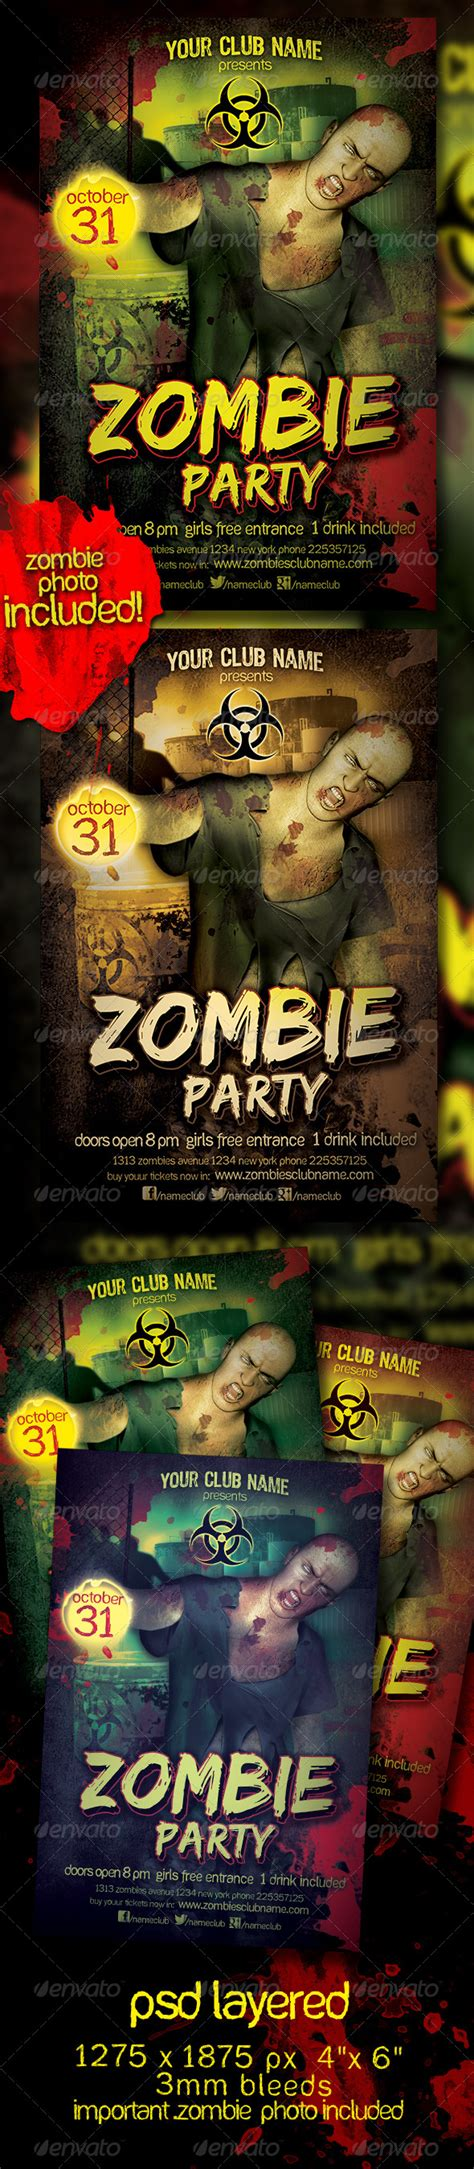 zombie powerpoint themes zombie party flyer template by gabrielmatari graphicriver